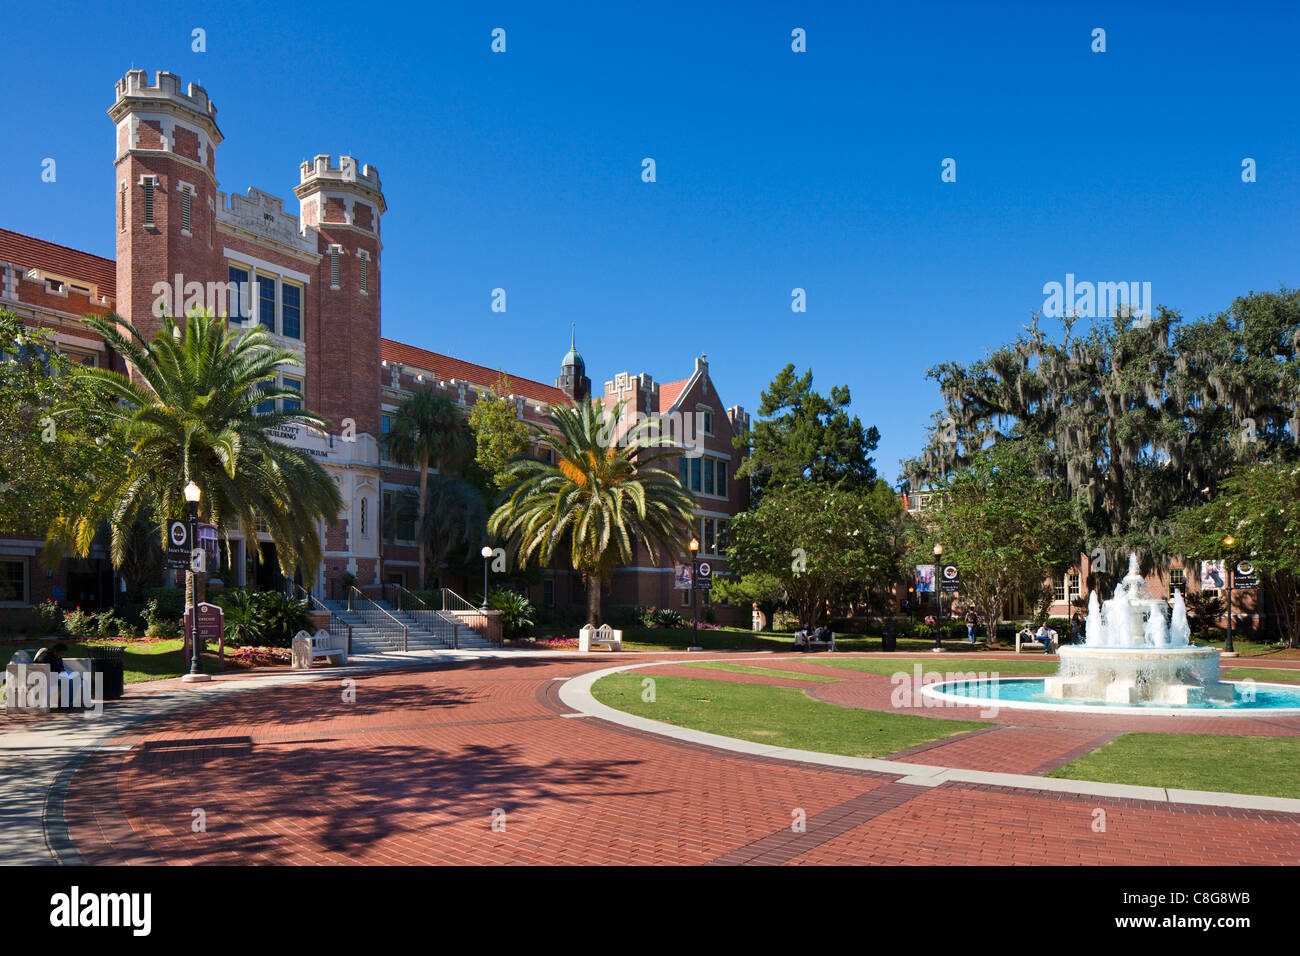 The Westcott Building and Ruby Diamond Auditorium, Florida State University, Tallahassee, Florida, USA - Stock Image